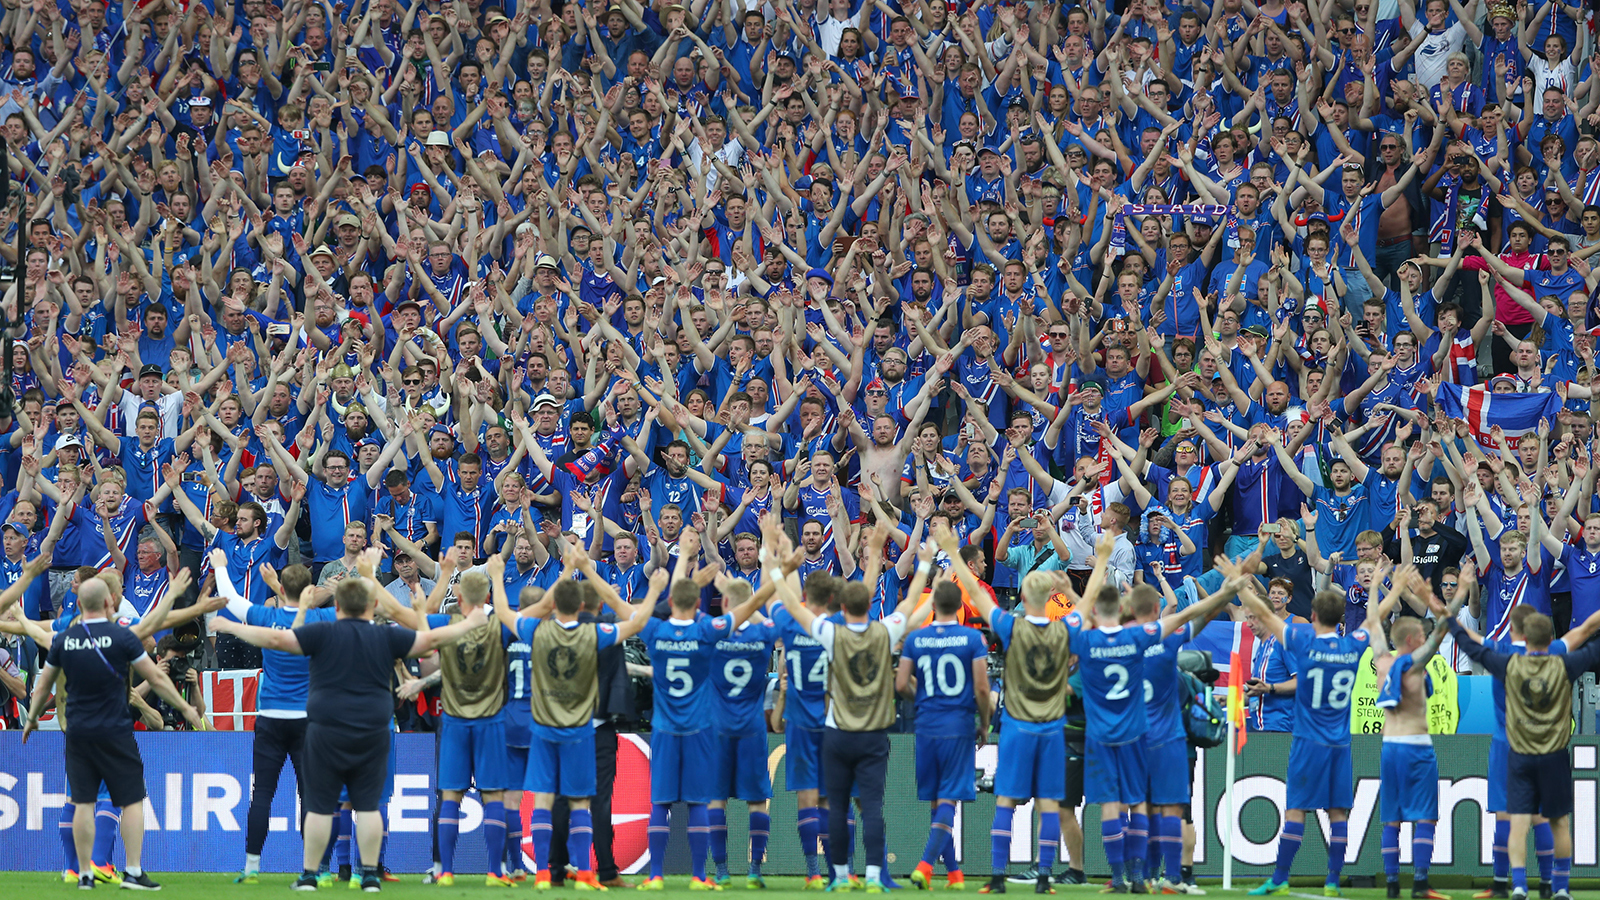 A new cult hero is born after Iceland clinch place in last 16.